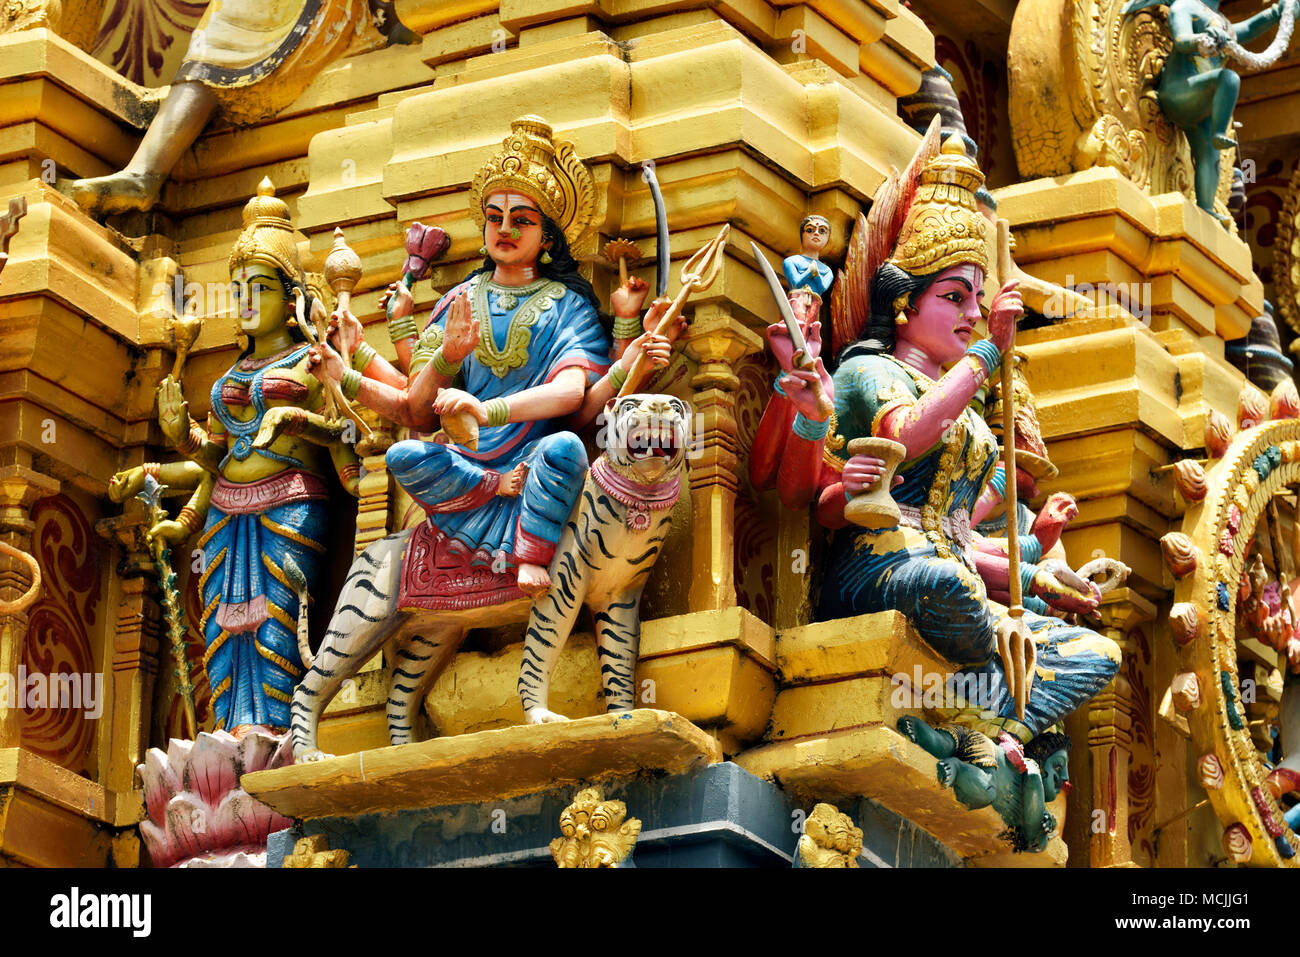 Colorful Hindu temple decorated with figures and gods, Sri Muthumariamman, Matale, Central Province, Sri Lanka - Stock Image